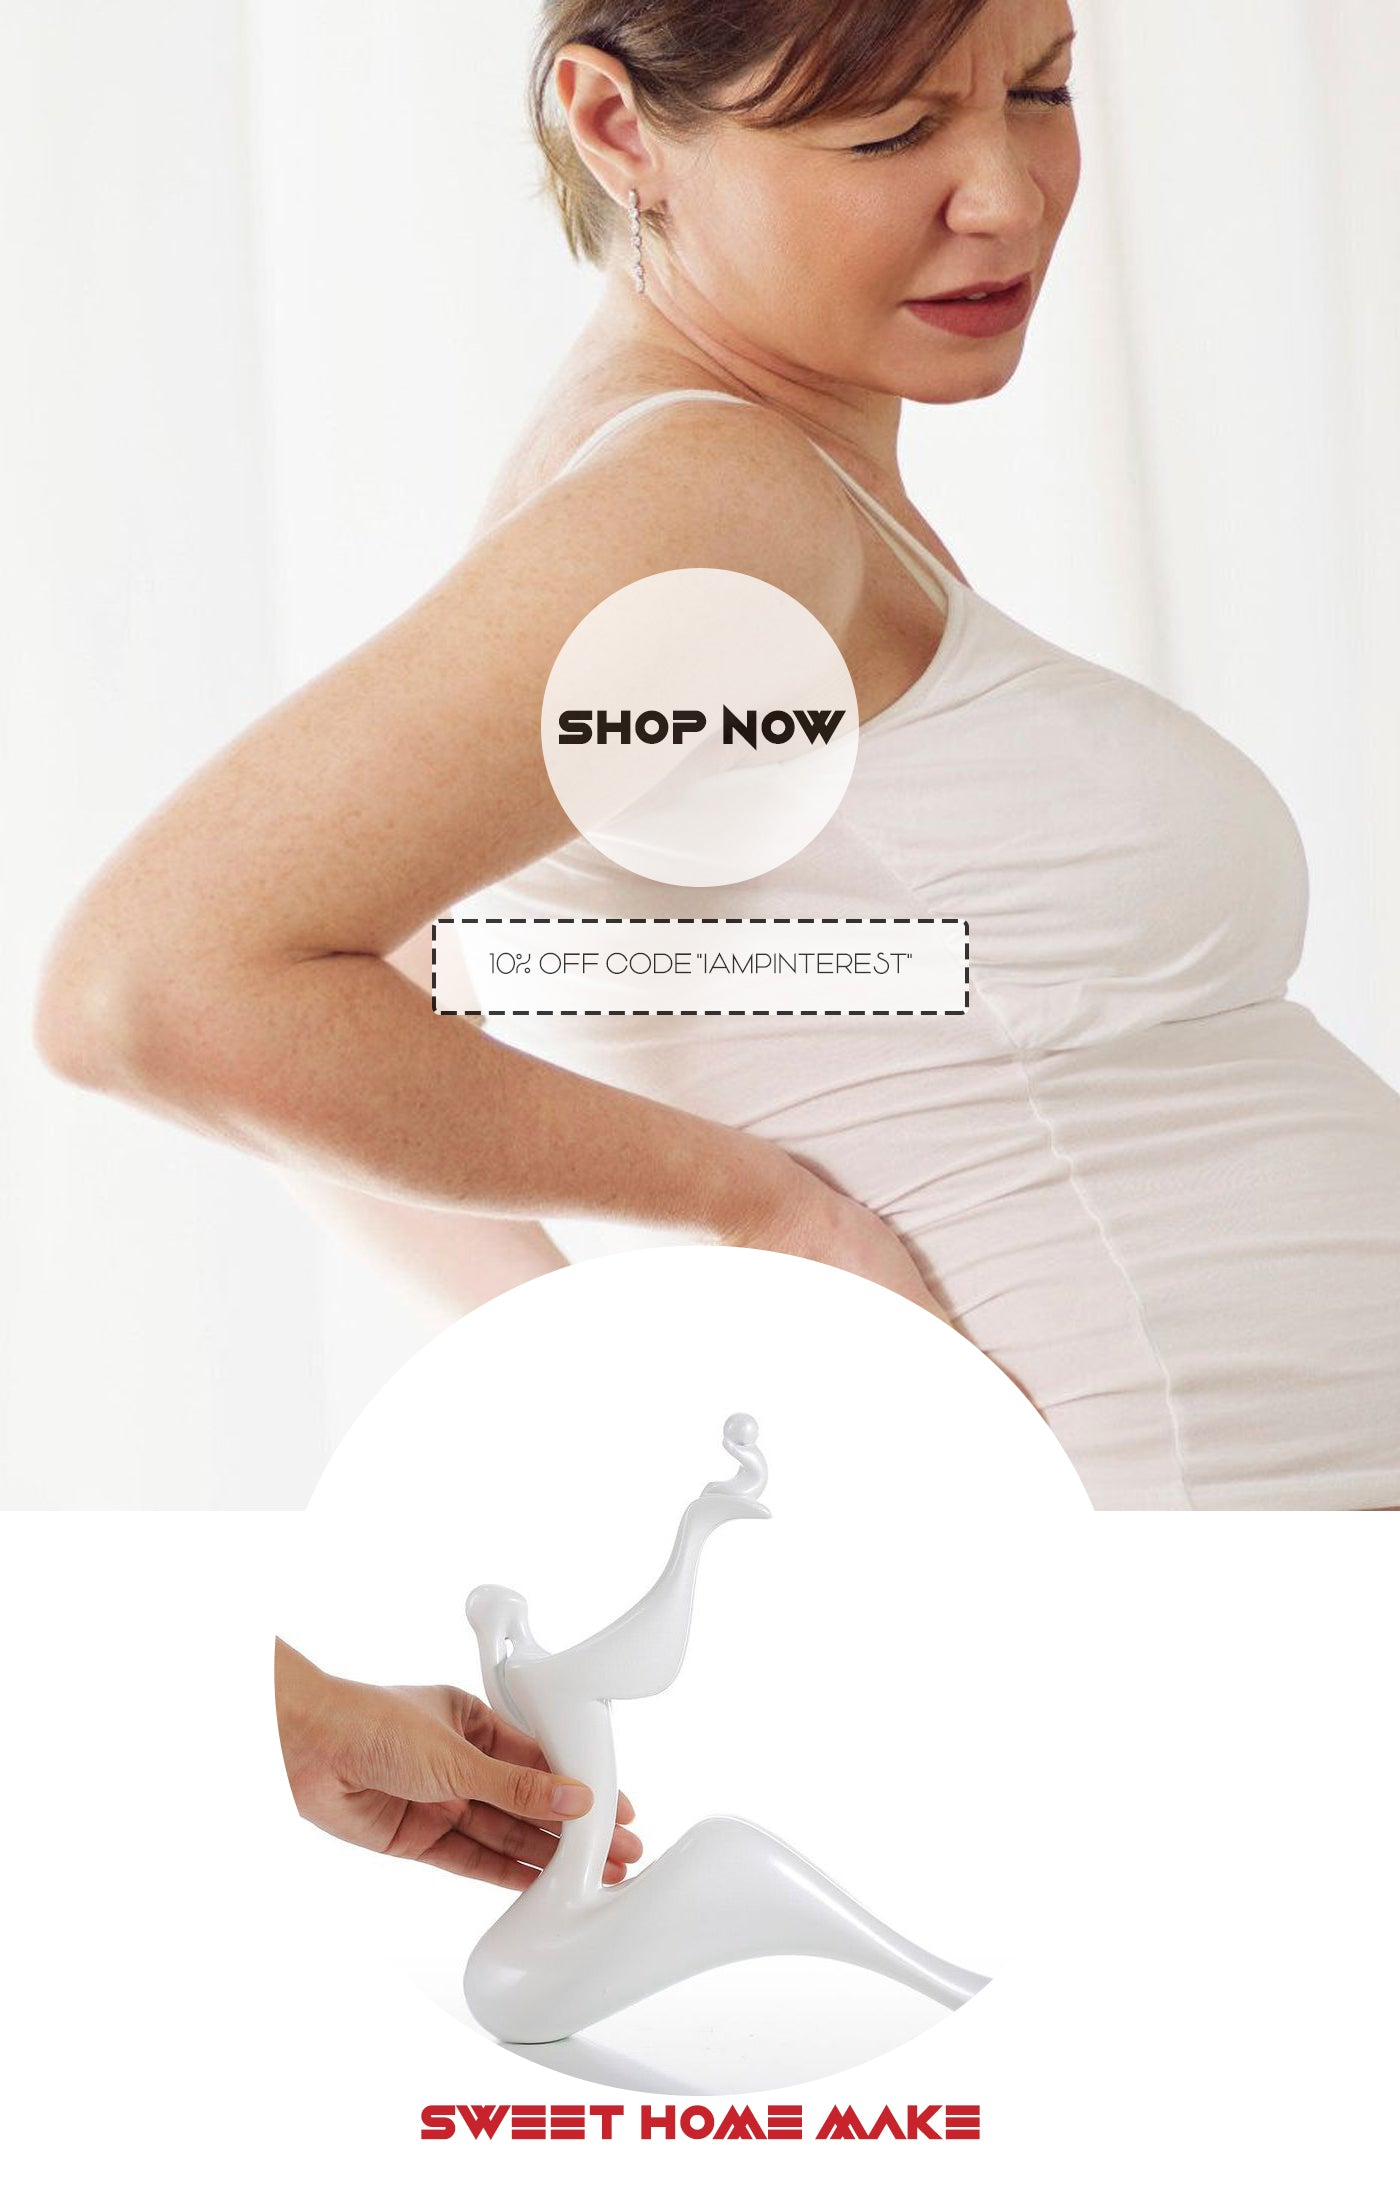 Mum To Be Gifts Am I Pregnant Creative and Calming Solution for Pregnancy Symptoms